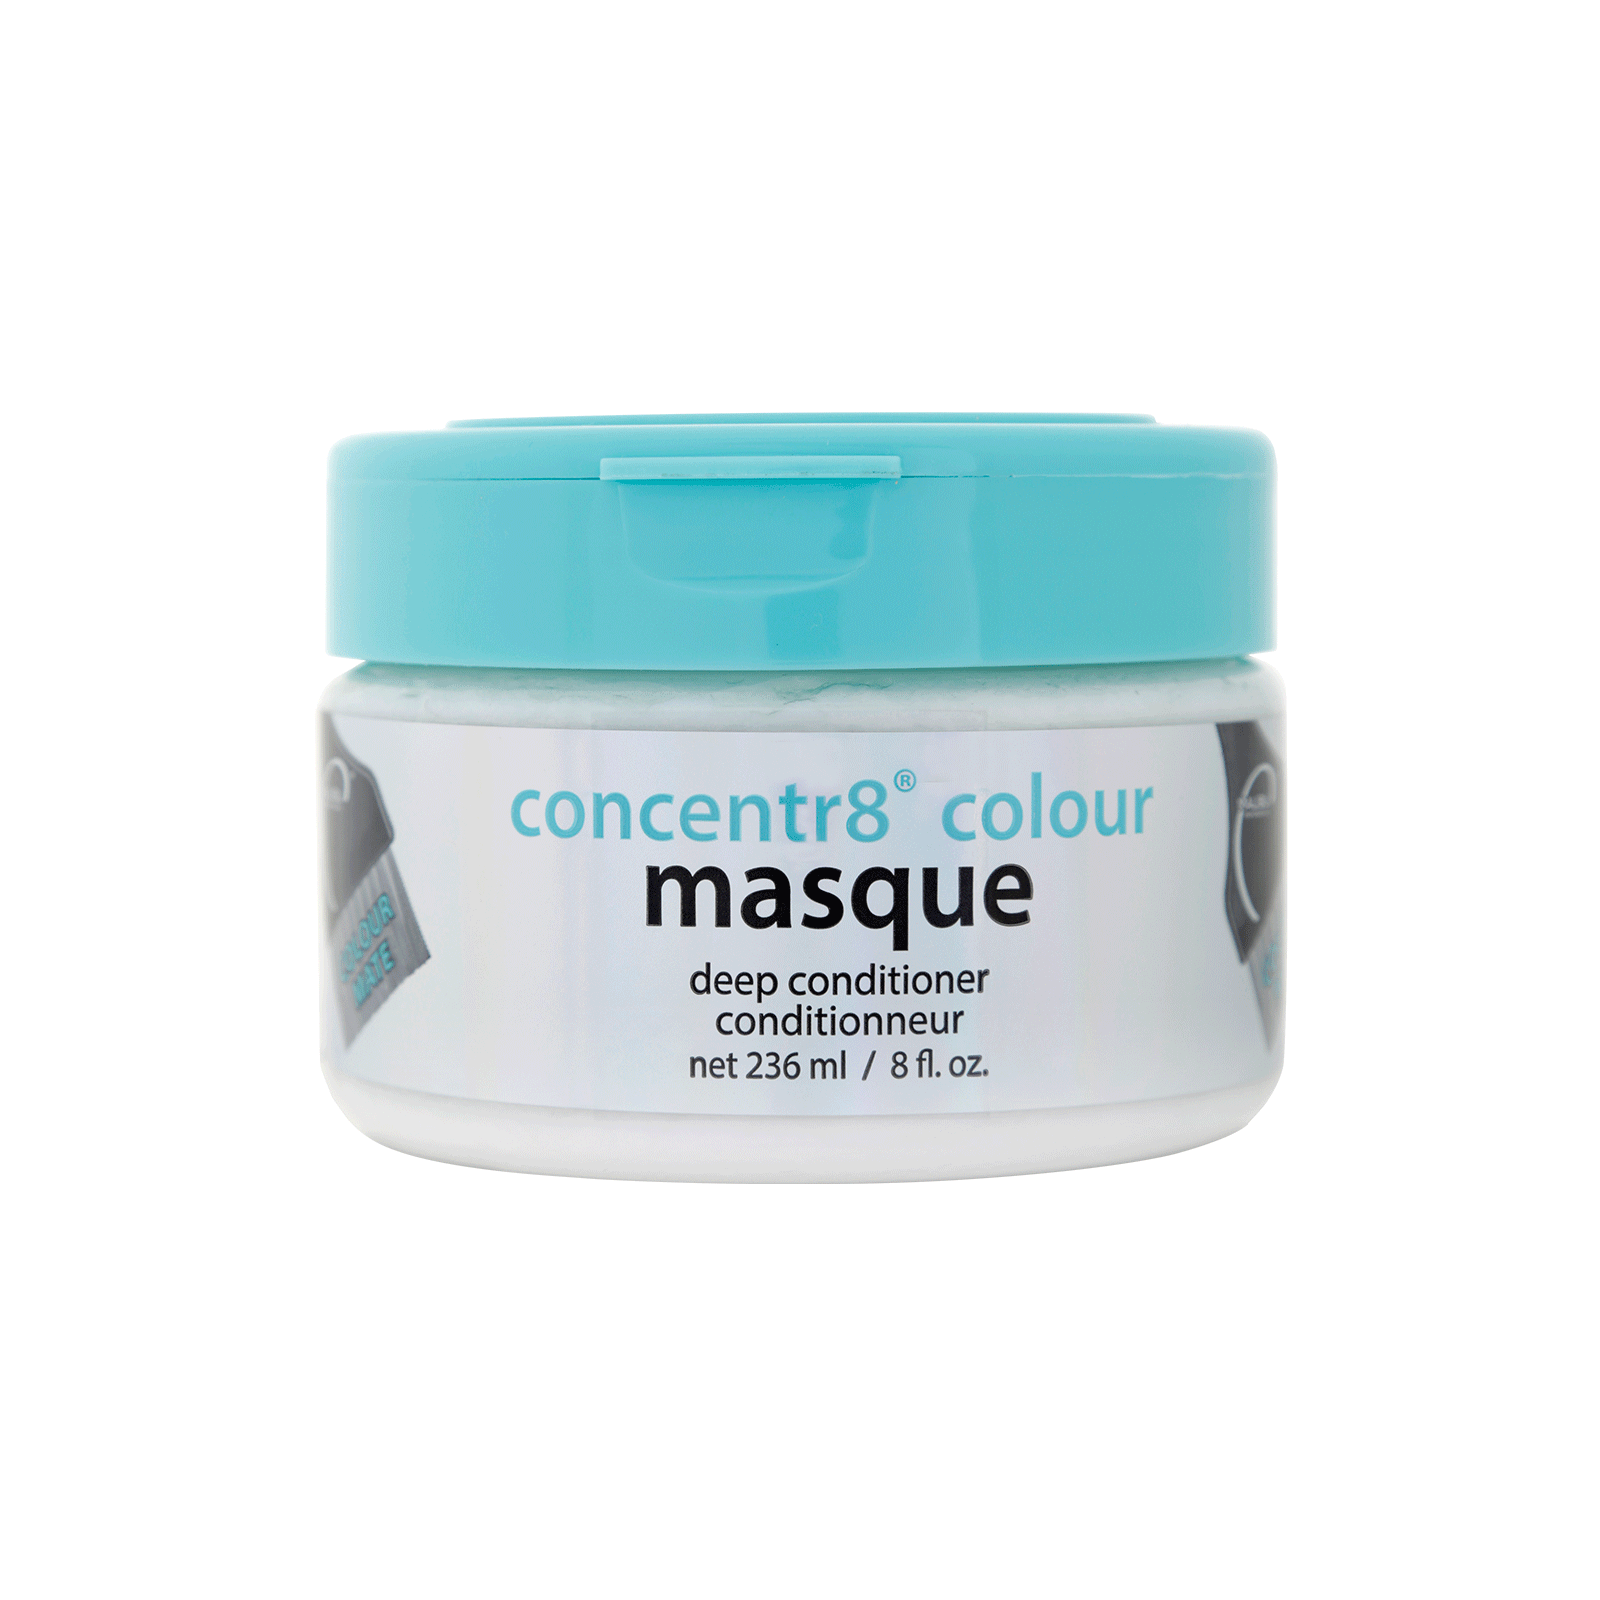 Concentr8 Colour Masque